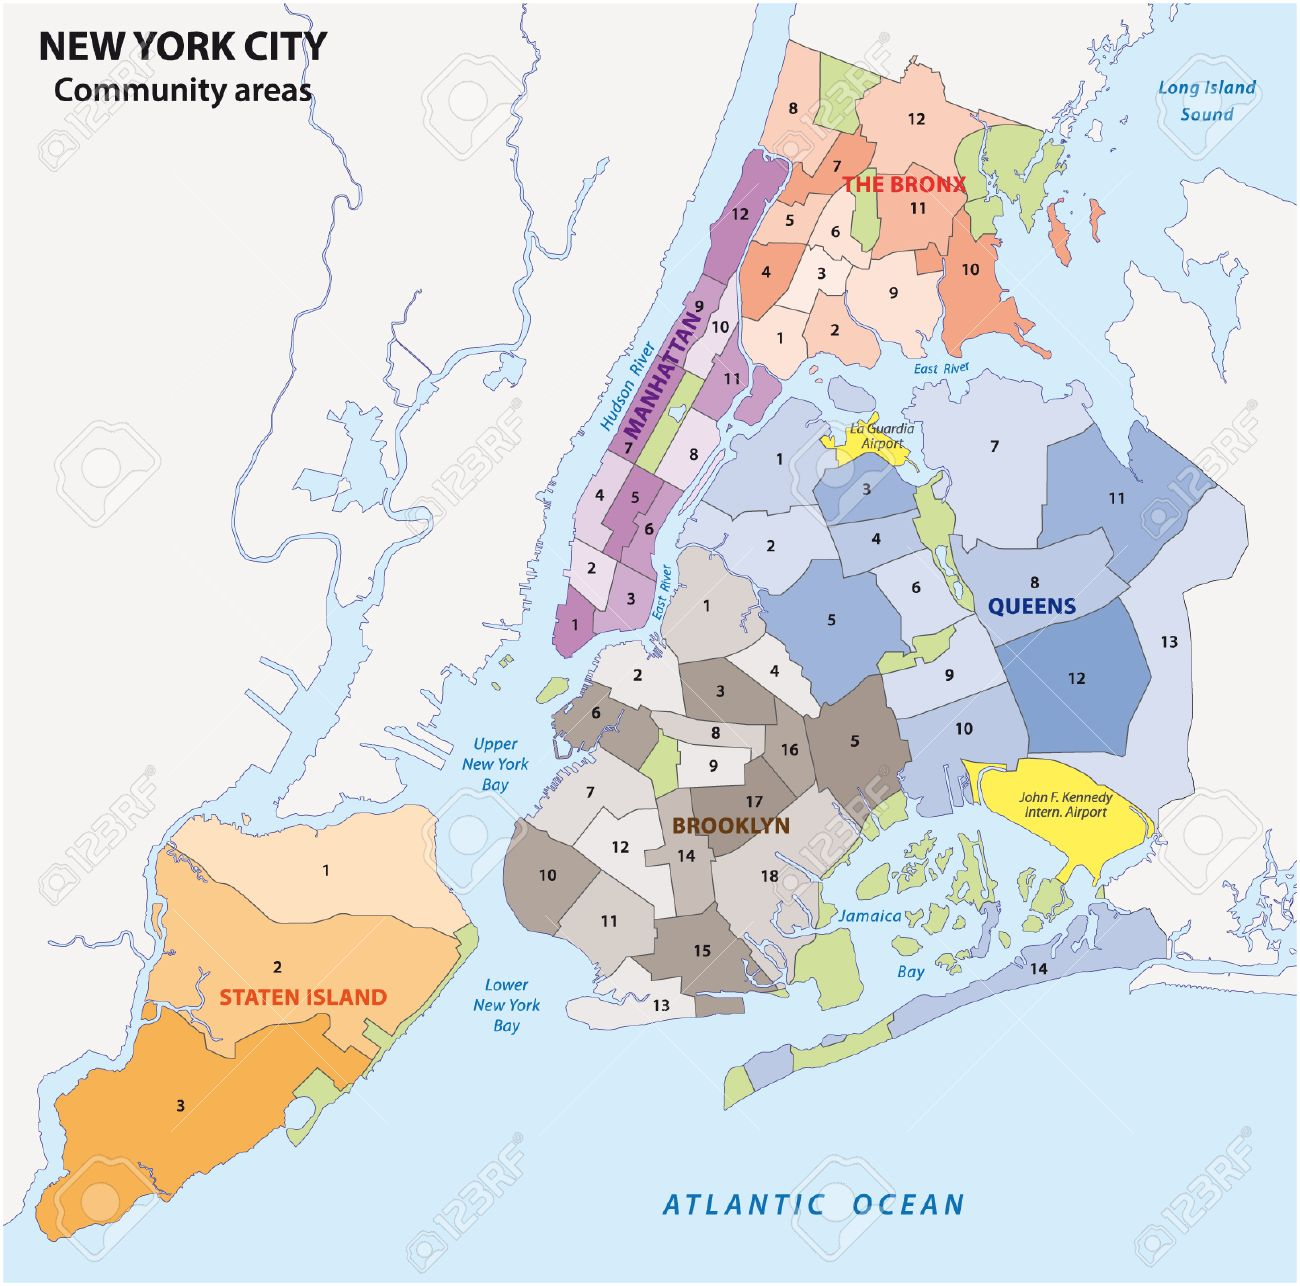 New York City, boroughs, community areas, neighborhoods, map